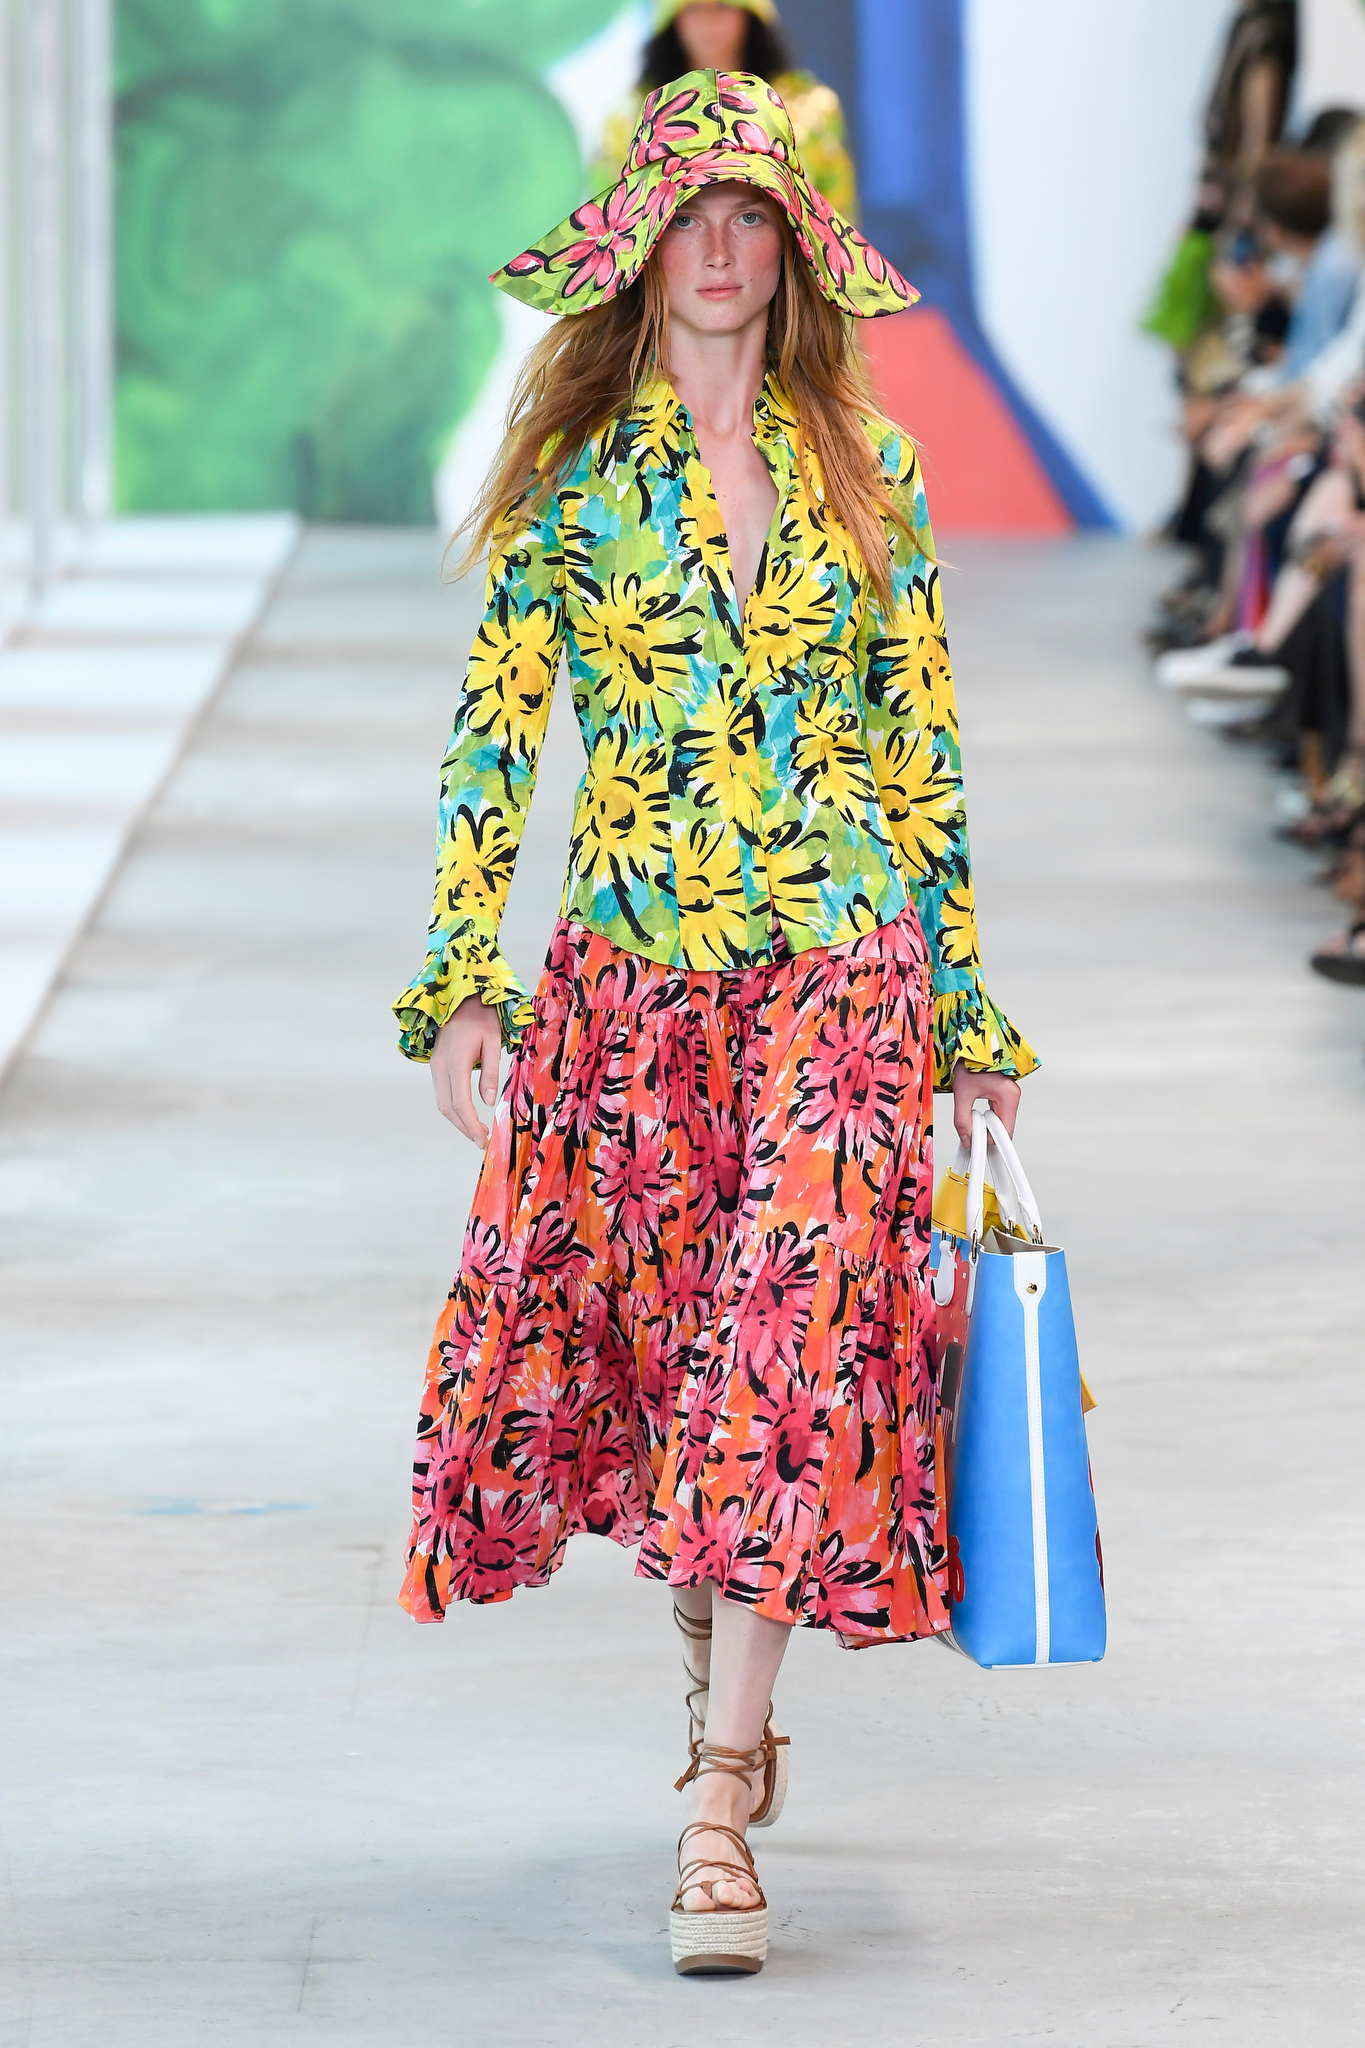 Michael Kors Spring Summer 2019 Fashion Show | Fashion News | Kendam